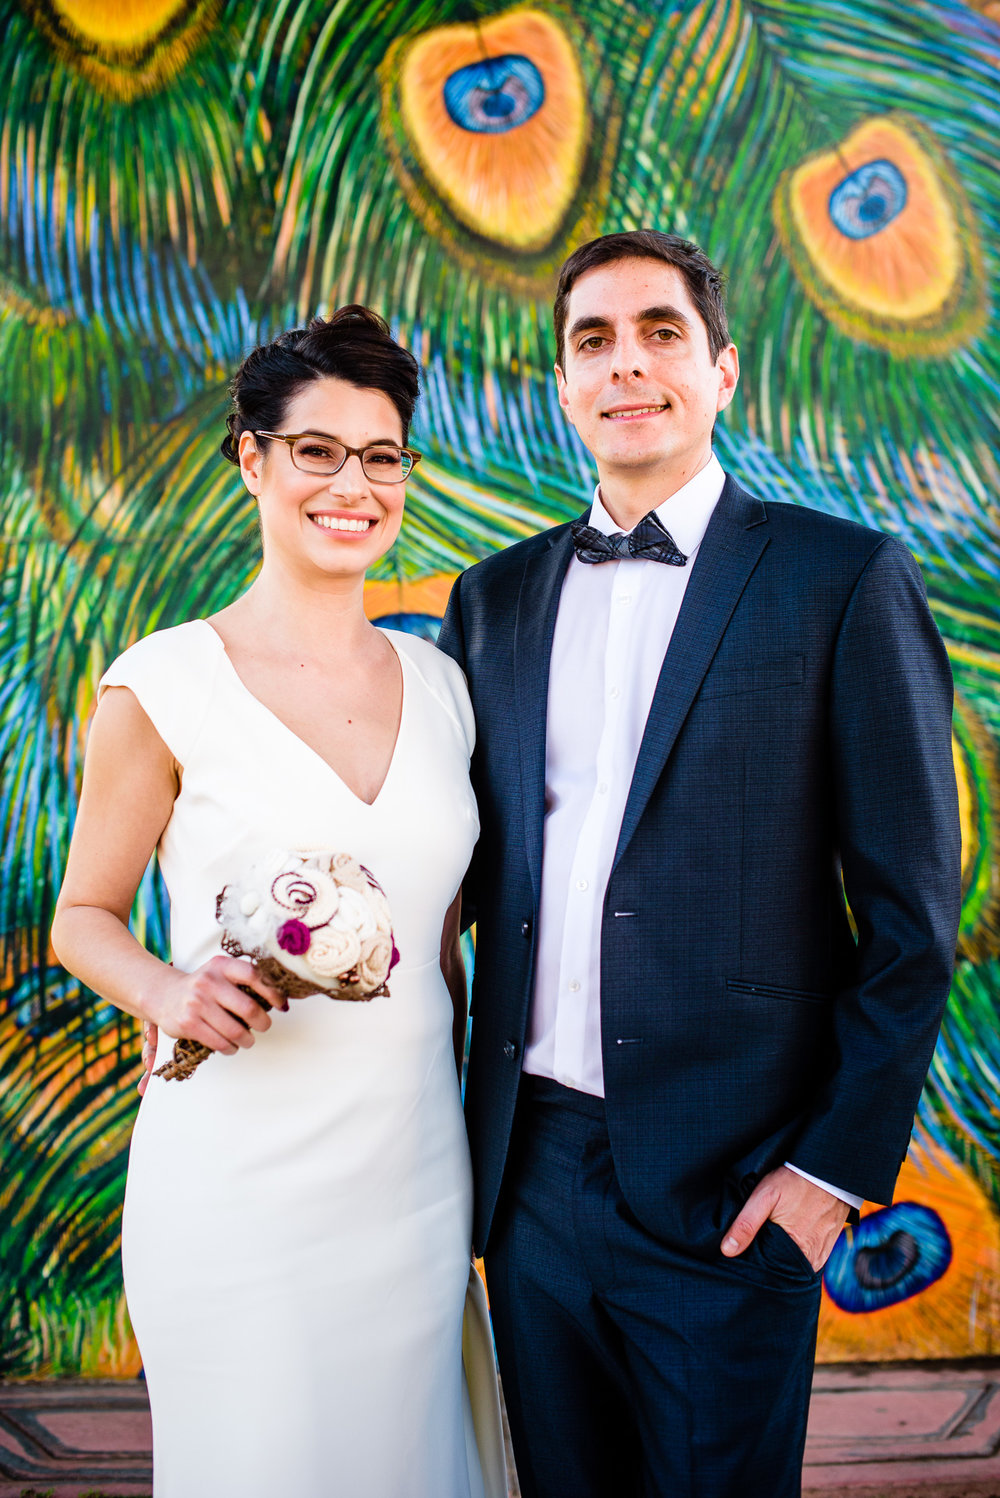 12.29.17 - Michelle and Tommaso Wedding - San Diego Courthouse -  Paul Douda Photography - 070.jpg